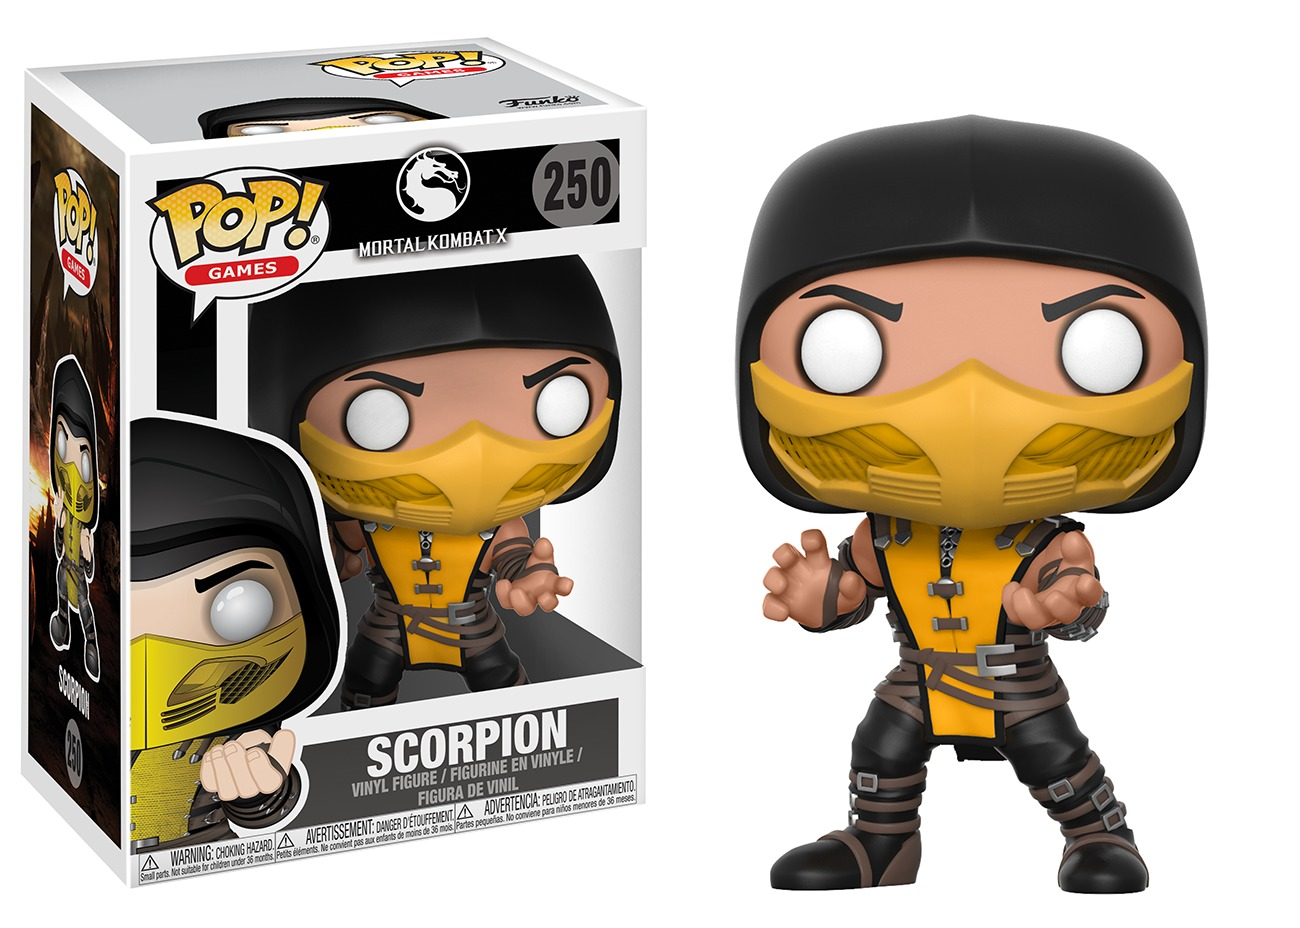 Mortal Kombat - Scorpion Pop! Vinyl Figure image